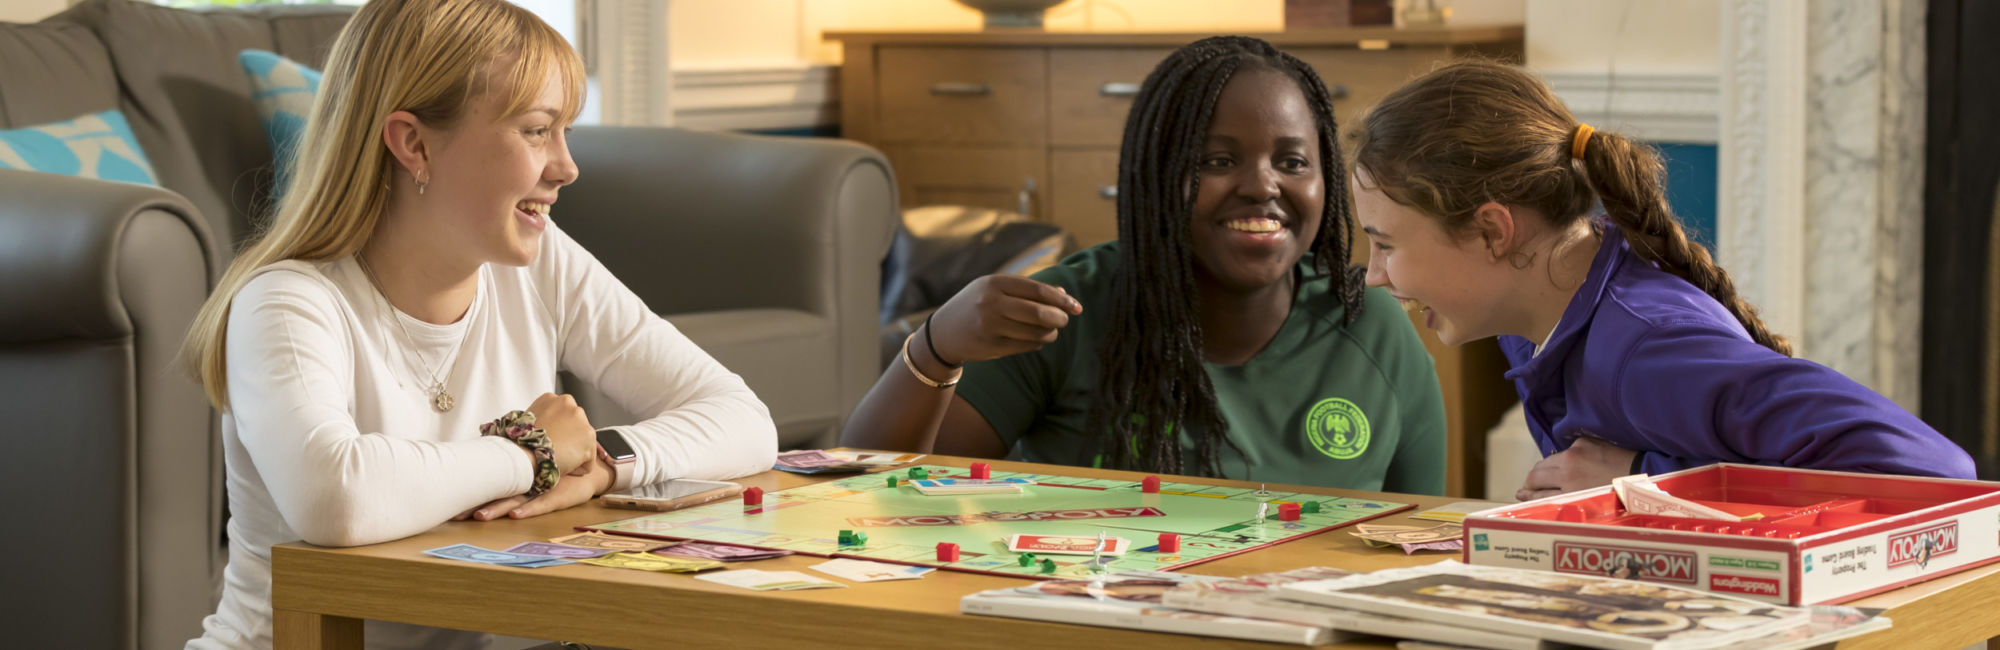 wycliffe girls playing monopoly in haywardsend house